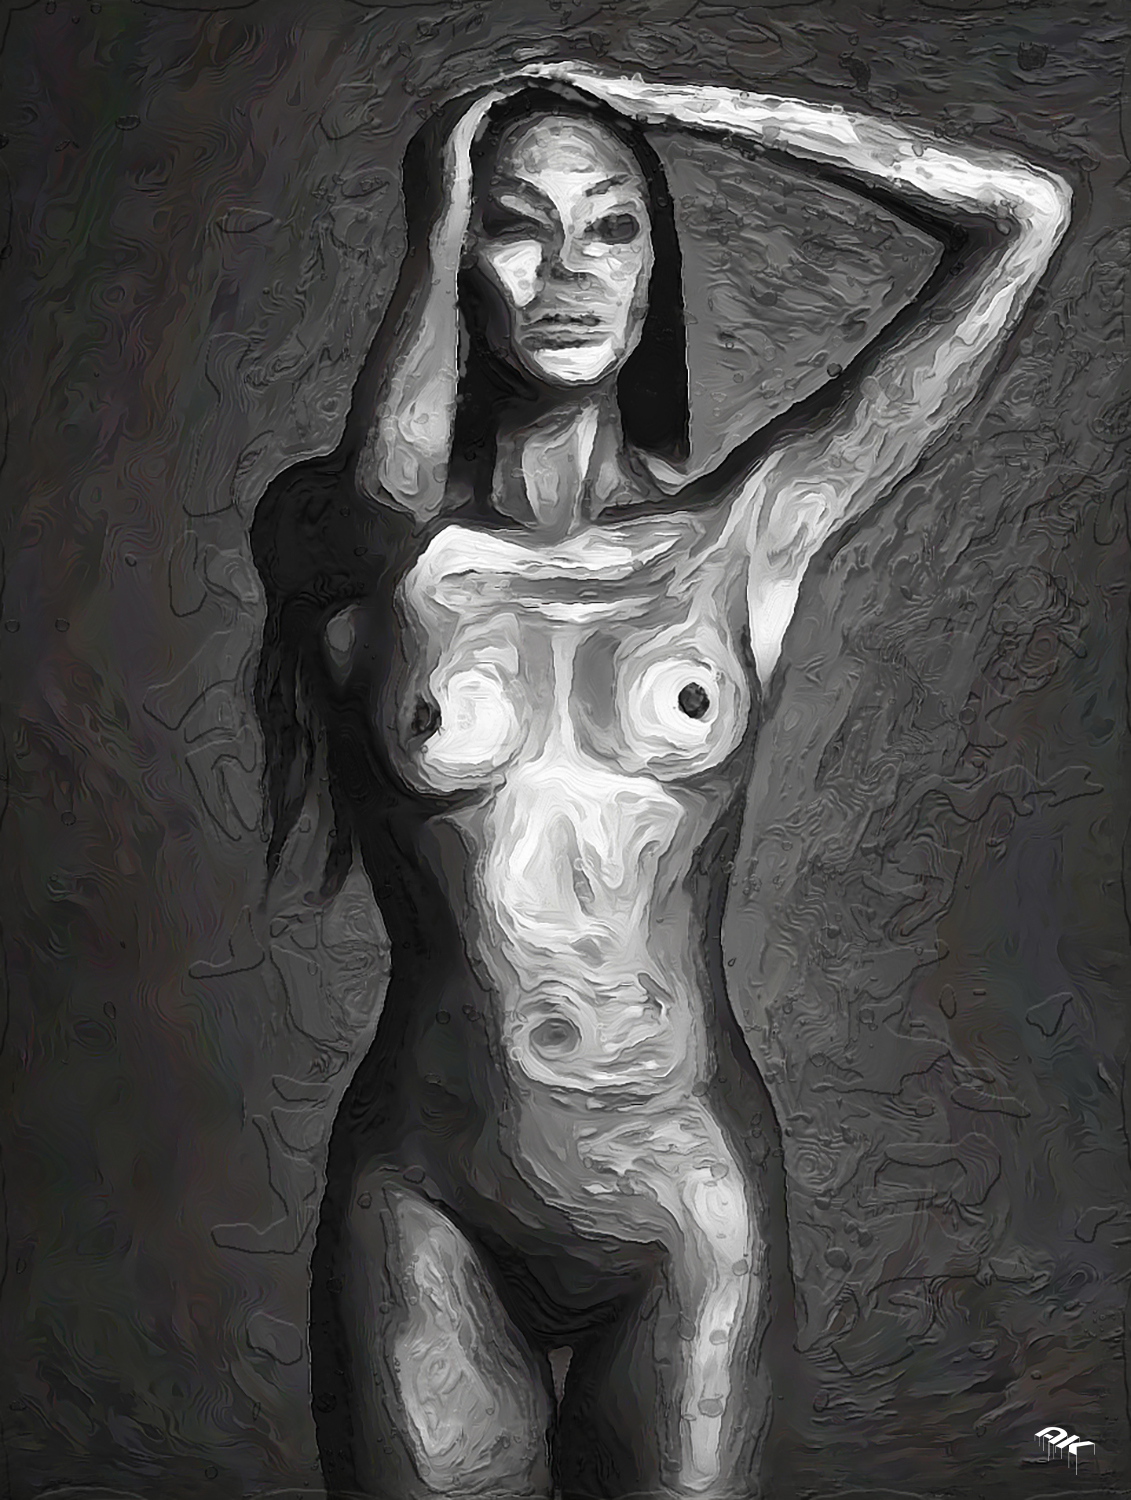 life-drawing-series-4-image-4-copyright-andrew-knutt